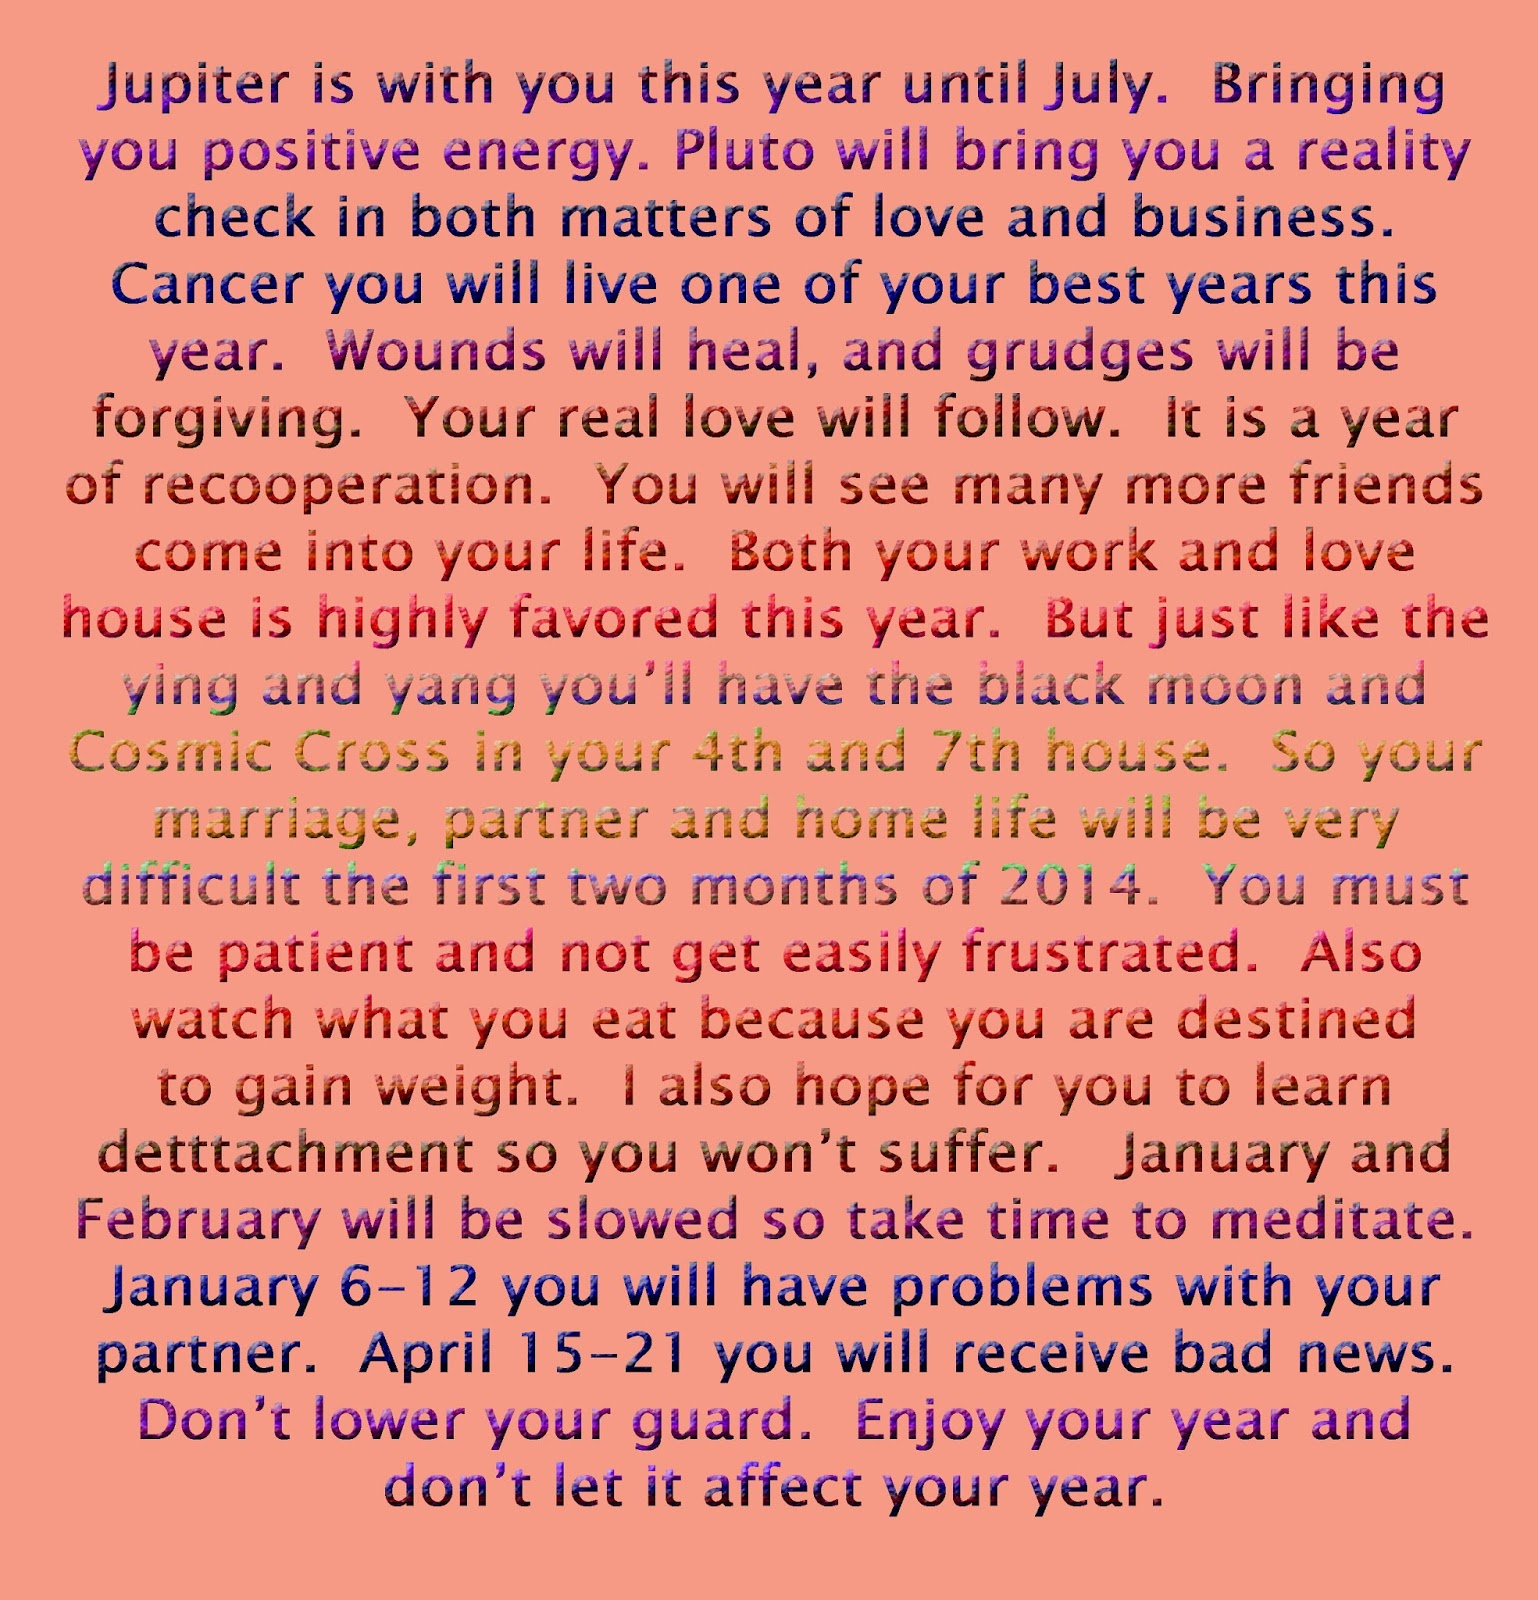 july 4th cancer horoscope